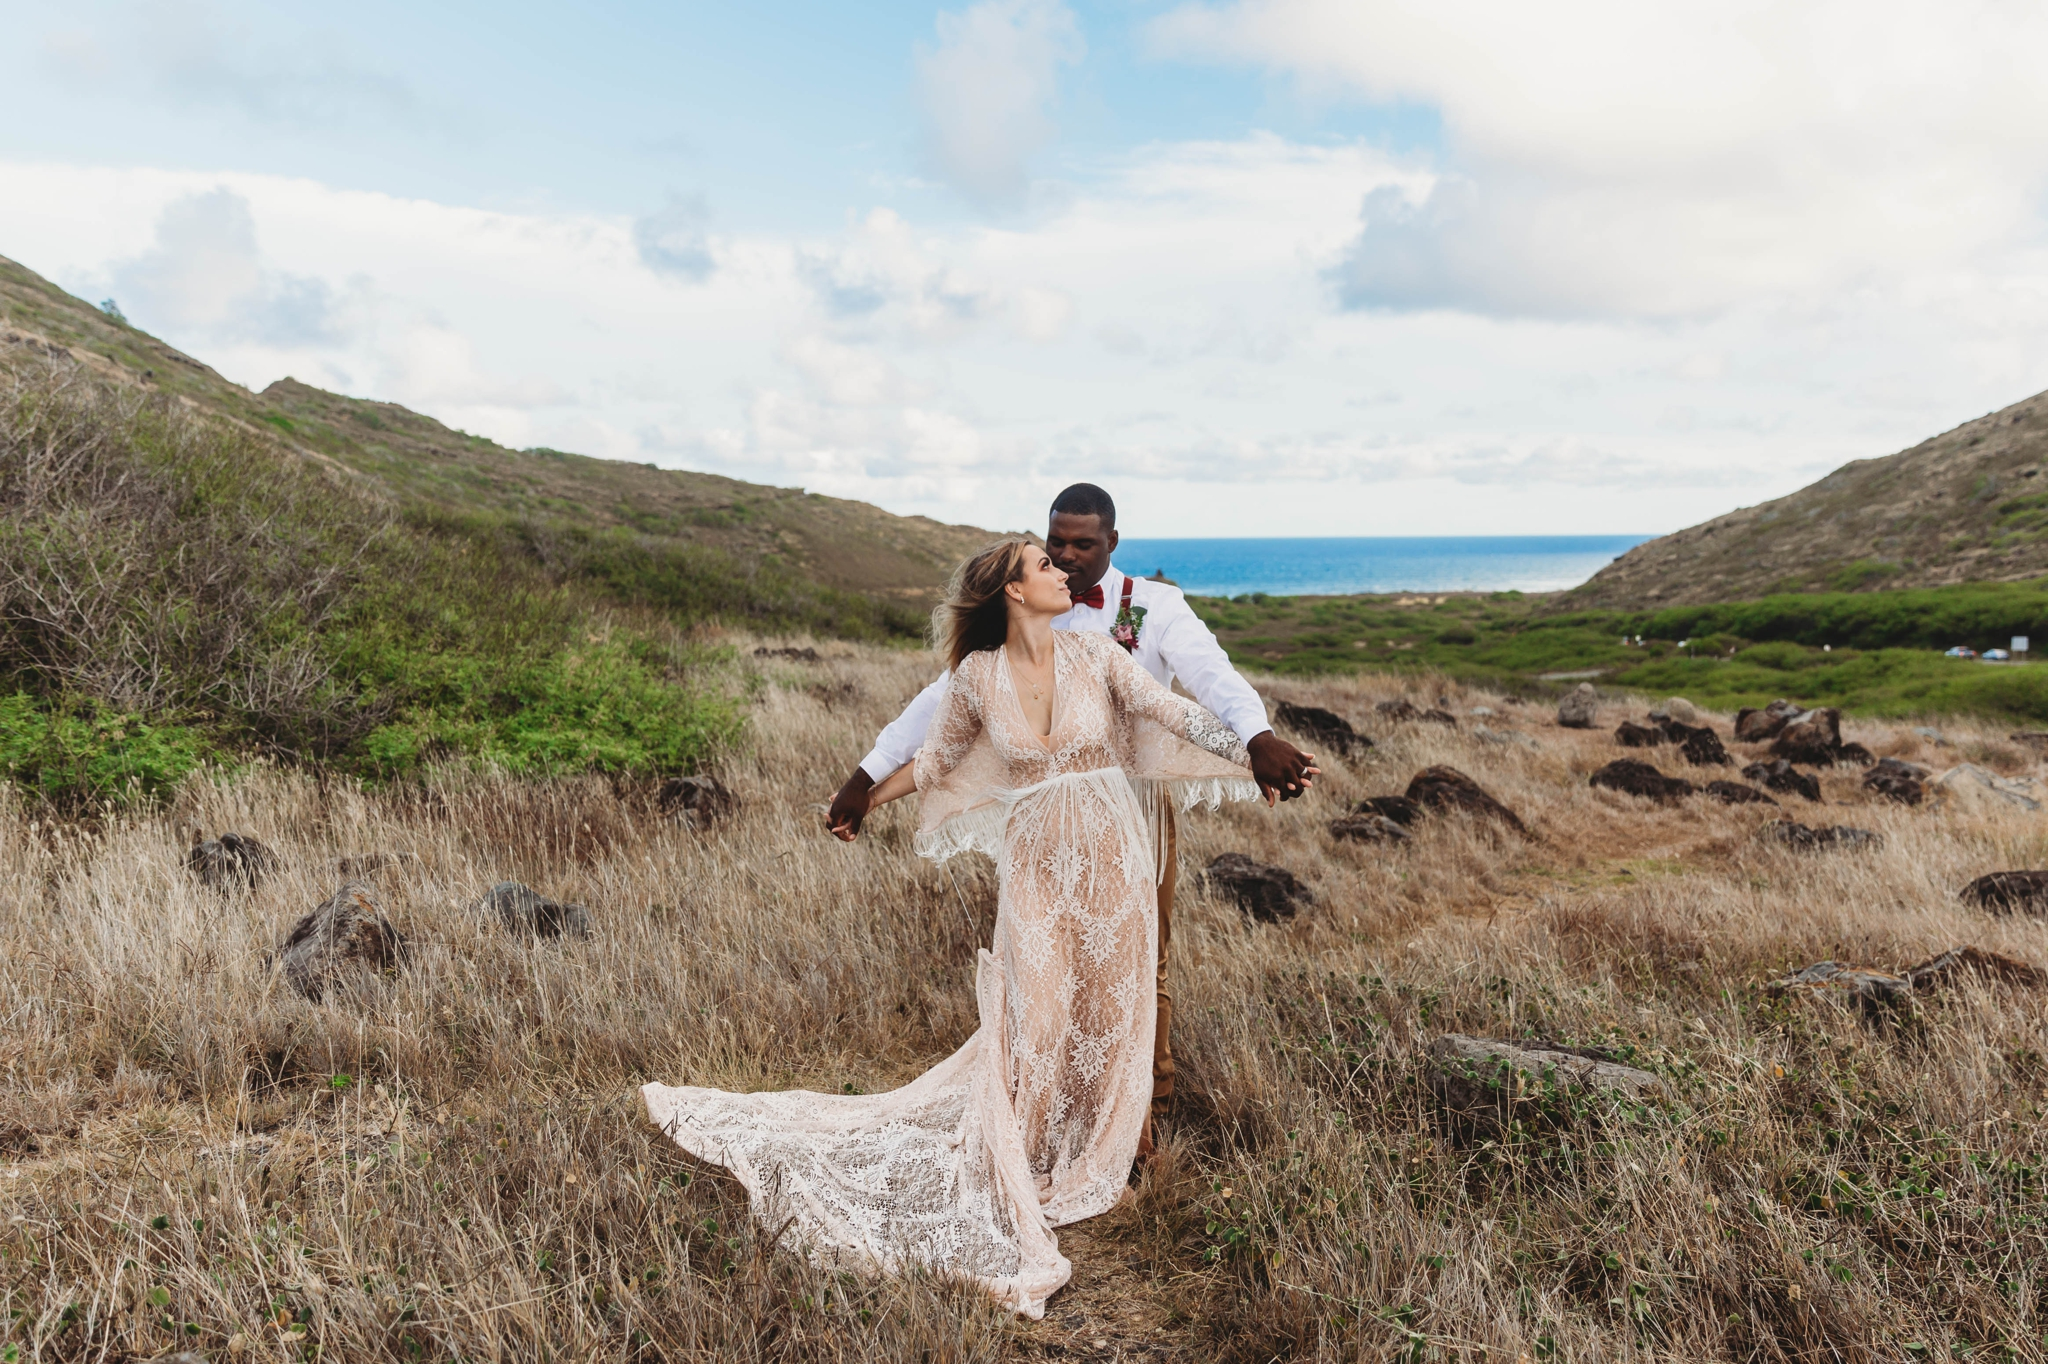 couple dancing around in the wind - Elopement at Makapuu Lookout, Waimanalo, HI - Oahu Hawaii Engagement Photographer - Bride in a flowy fringe boho wedding dress - in grassy mountains with the ocean in the back - lanikai lookout - deutsche hochzeits fotografin in hawaii - smal1 - dark and moody - true to live